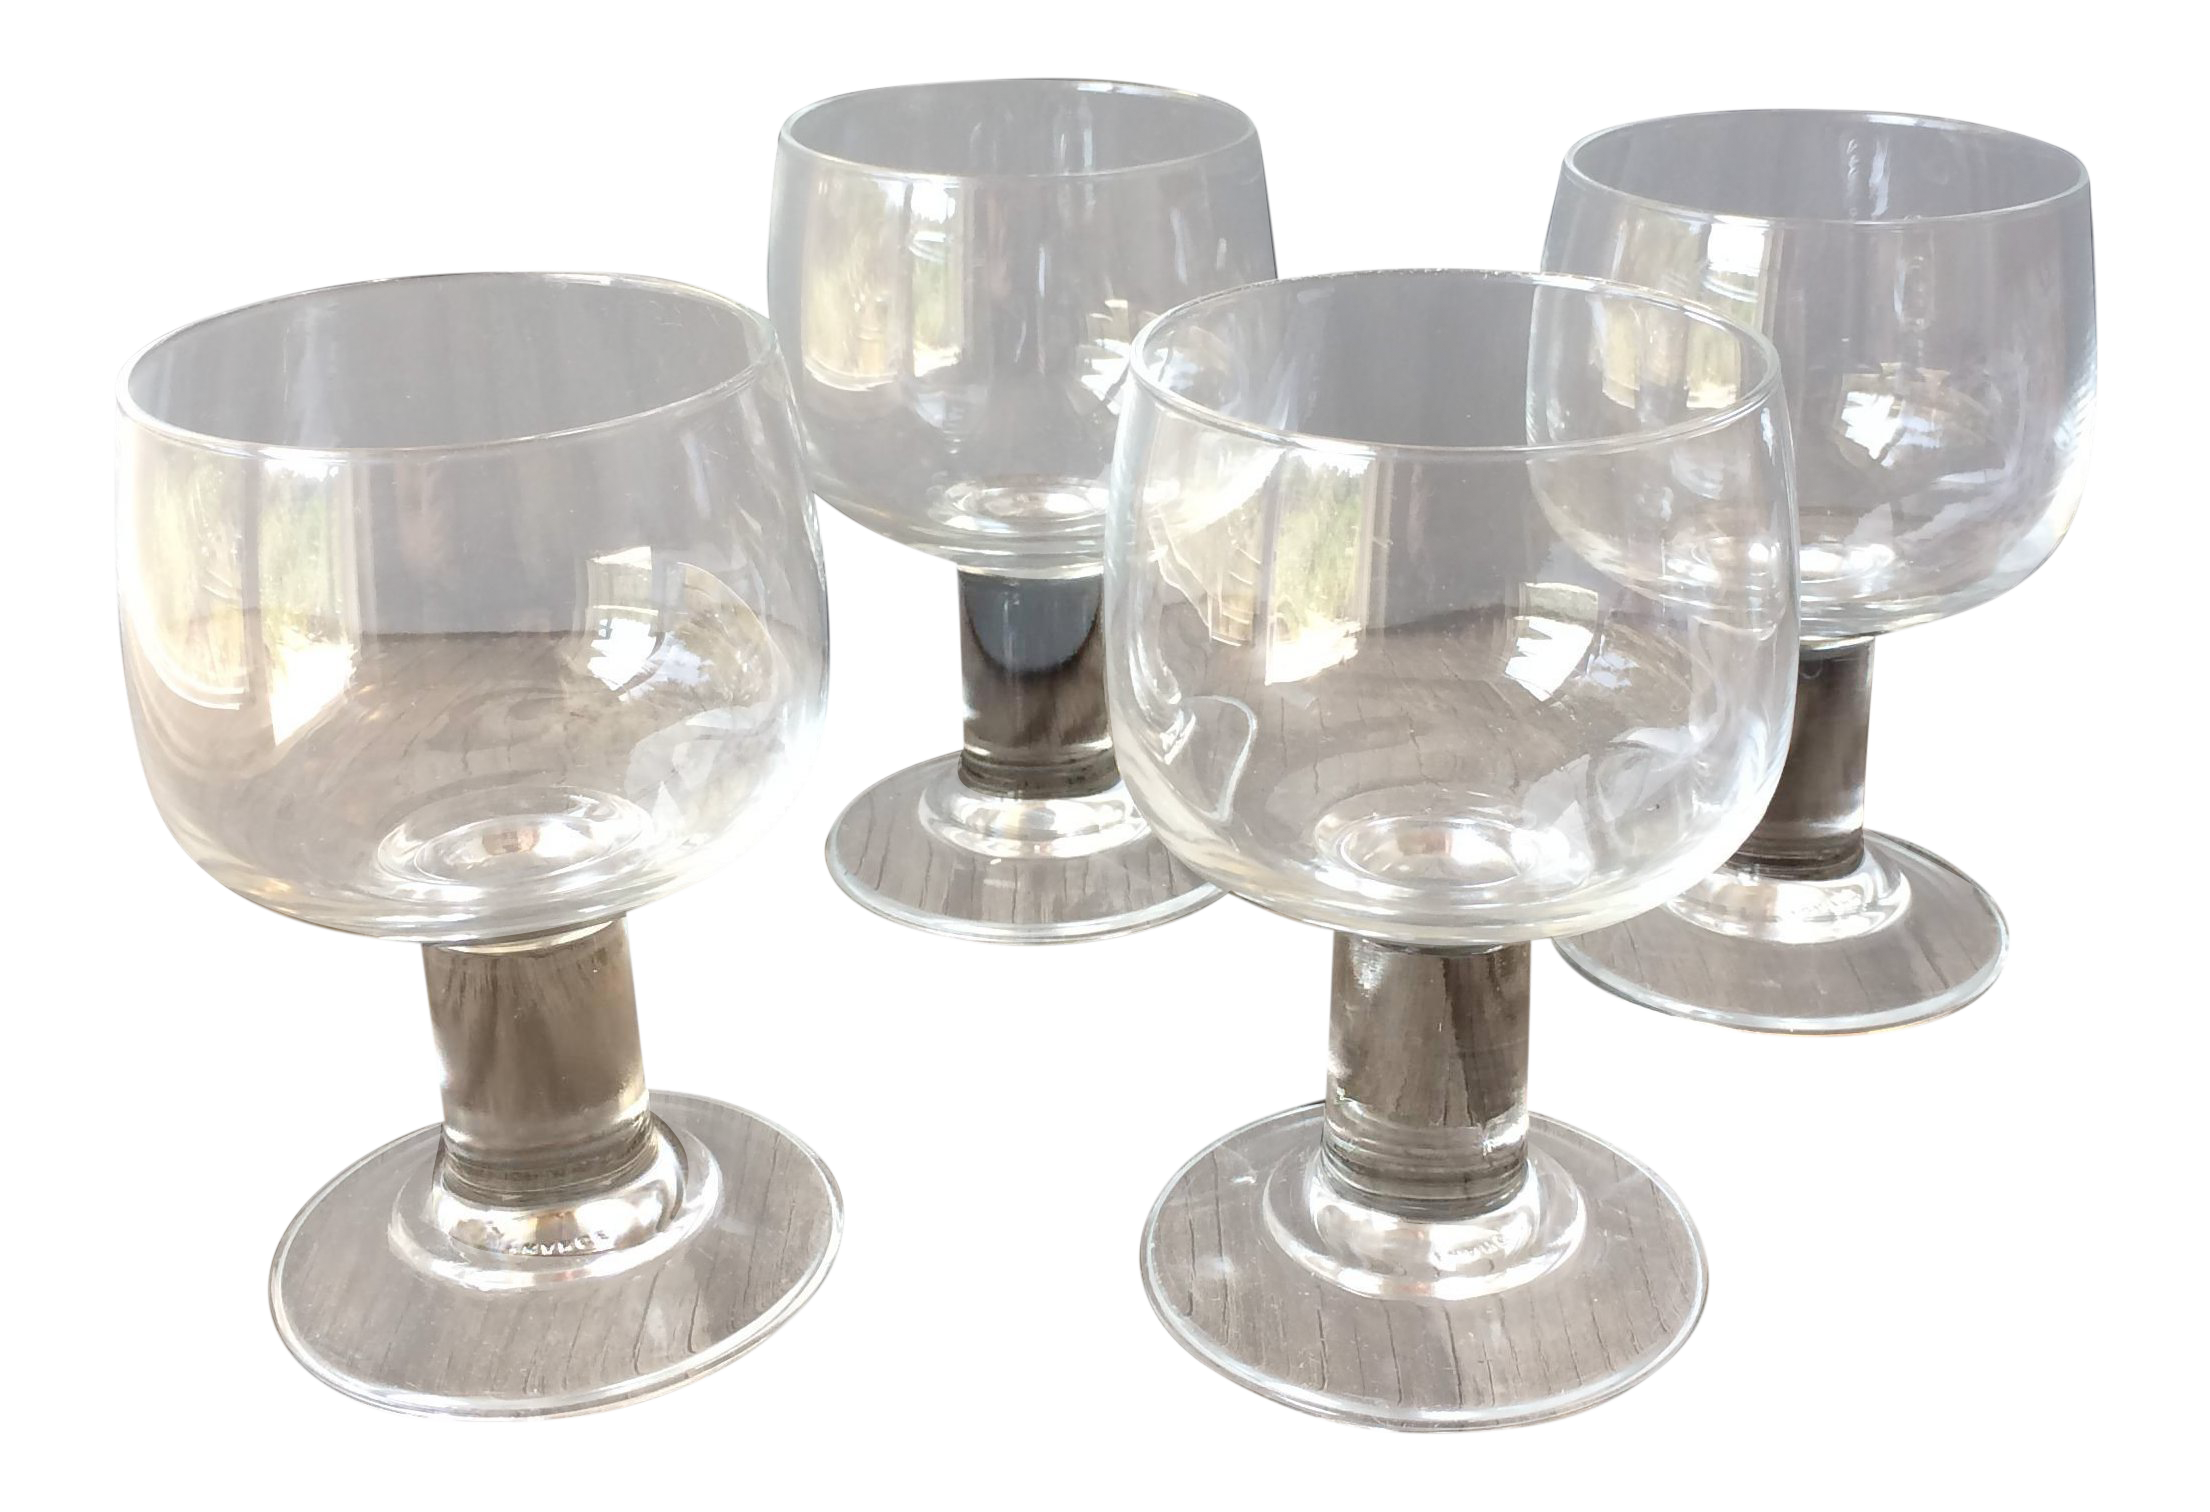 midcentury modern wine glasses set of 4